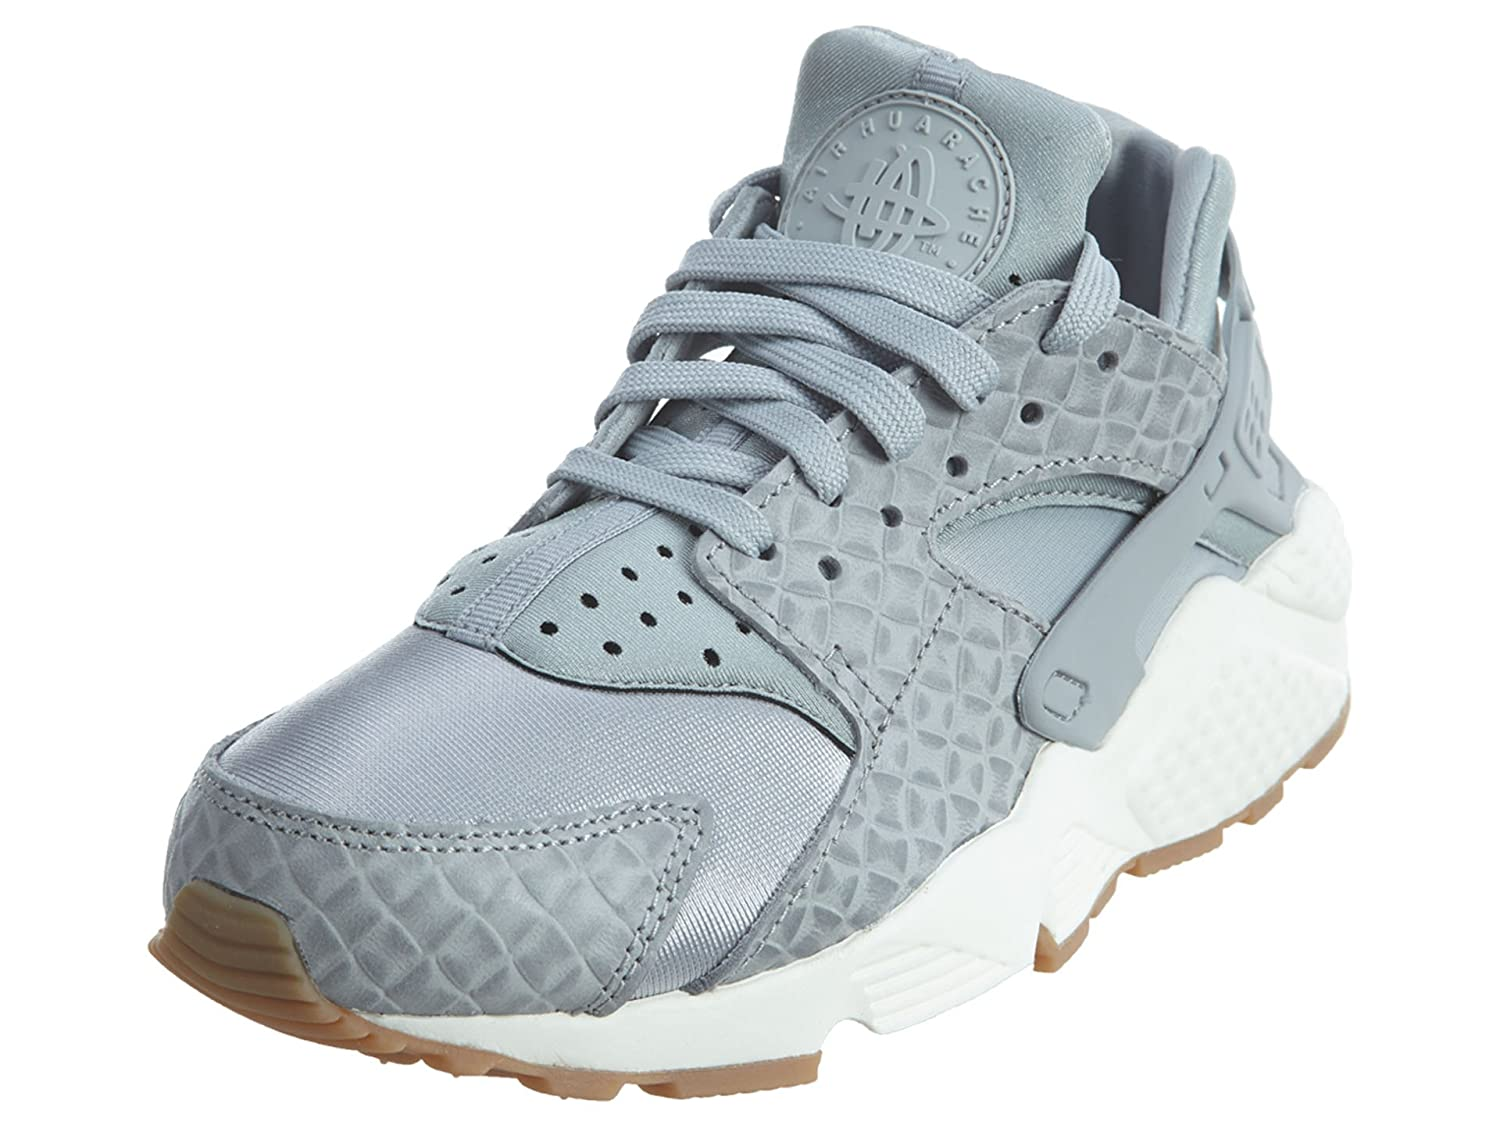 separation shoes 82bf3 cdc17 Amazon.com   NIKE Womens air Huarache Run PRM Trainers 683818 Sneakers Shoes  (7 D(M) US, Wolf Grey sail 012)   Fashion Sneakers